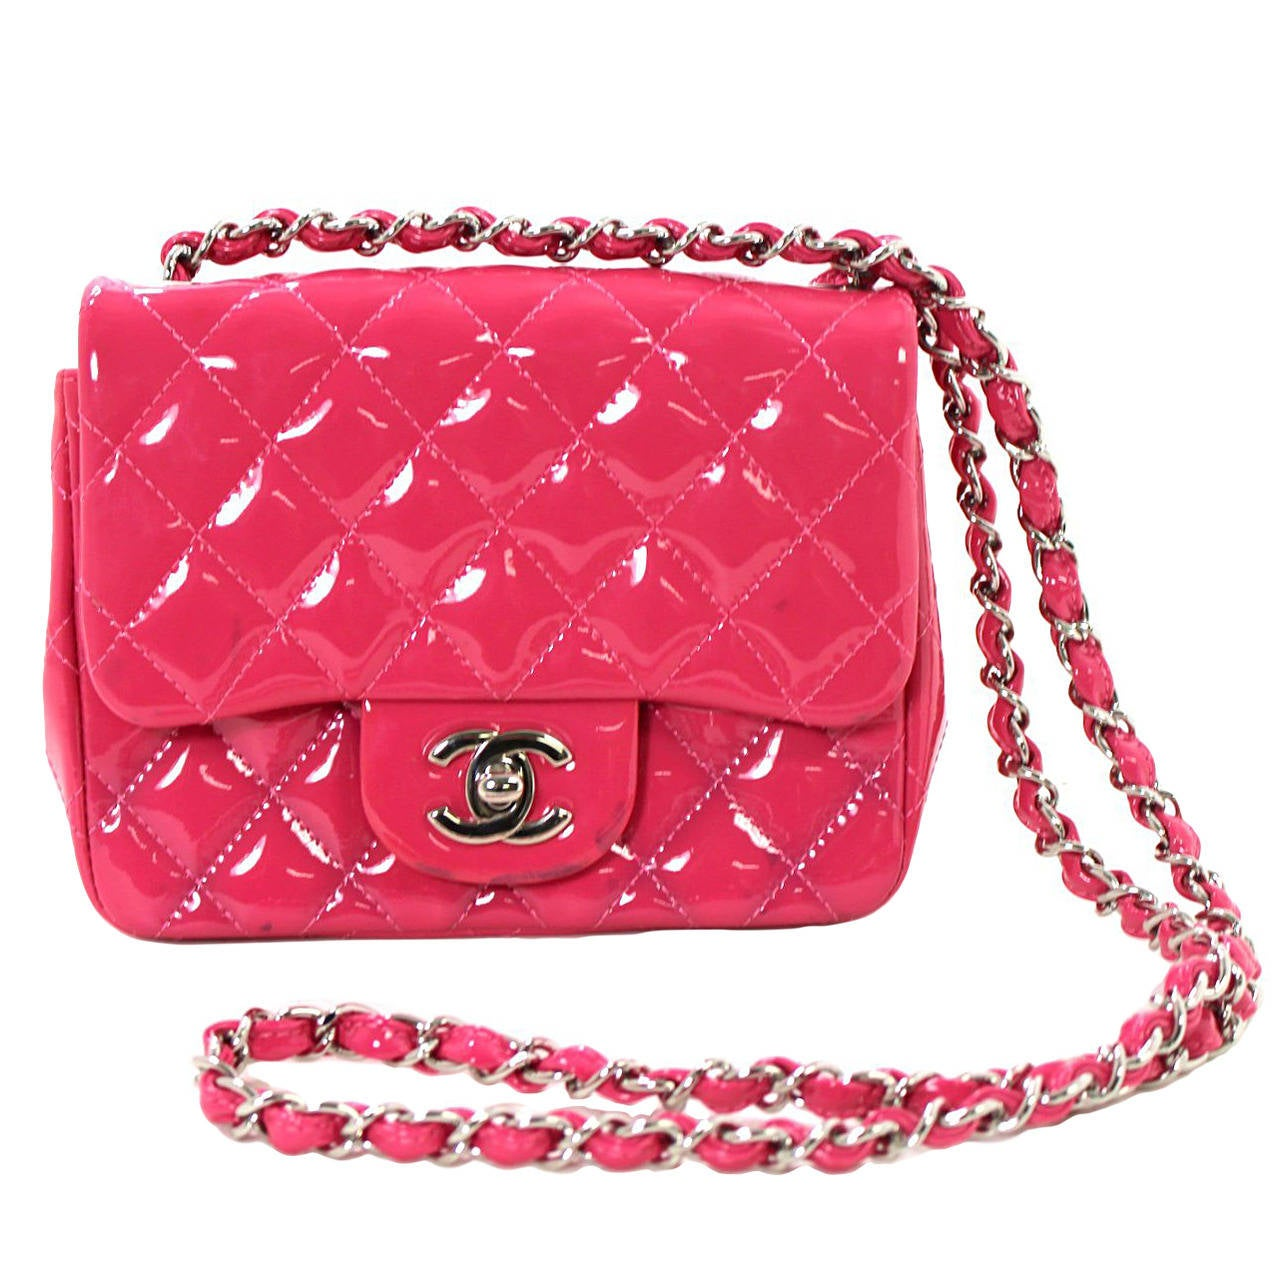 Chanel Pink Patent Mini Classic Flap Bag with Silver HW 1